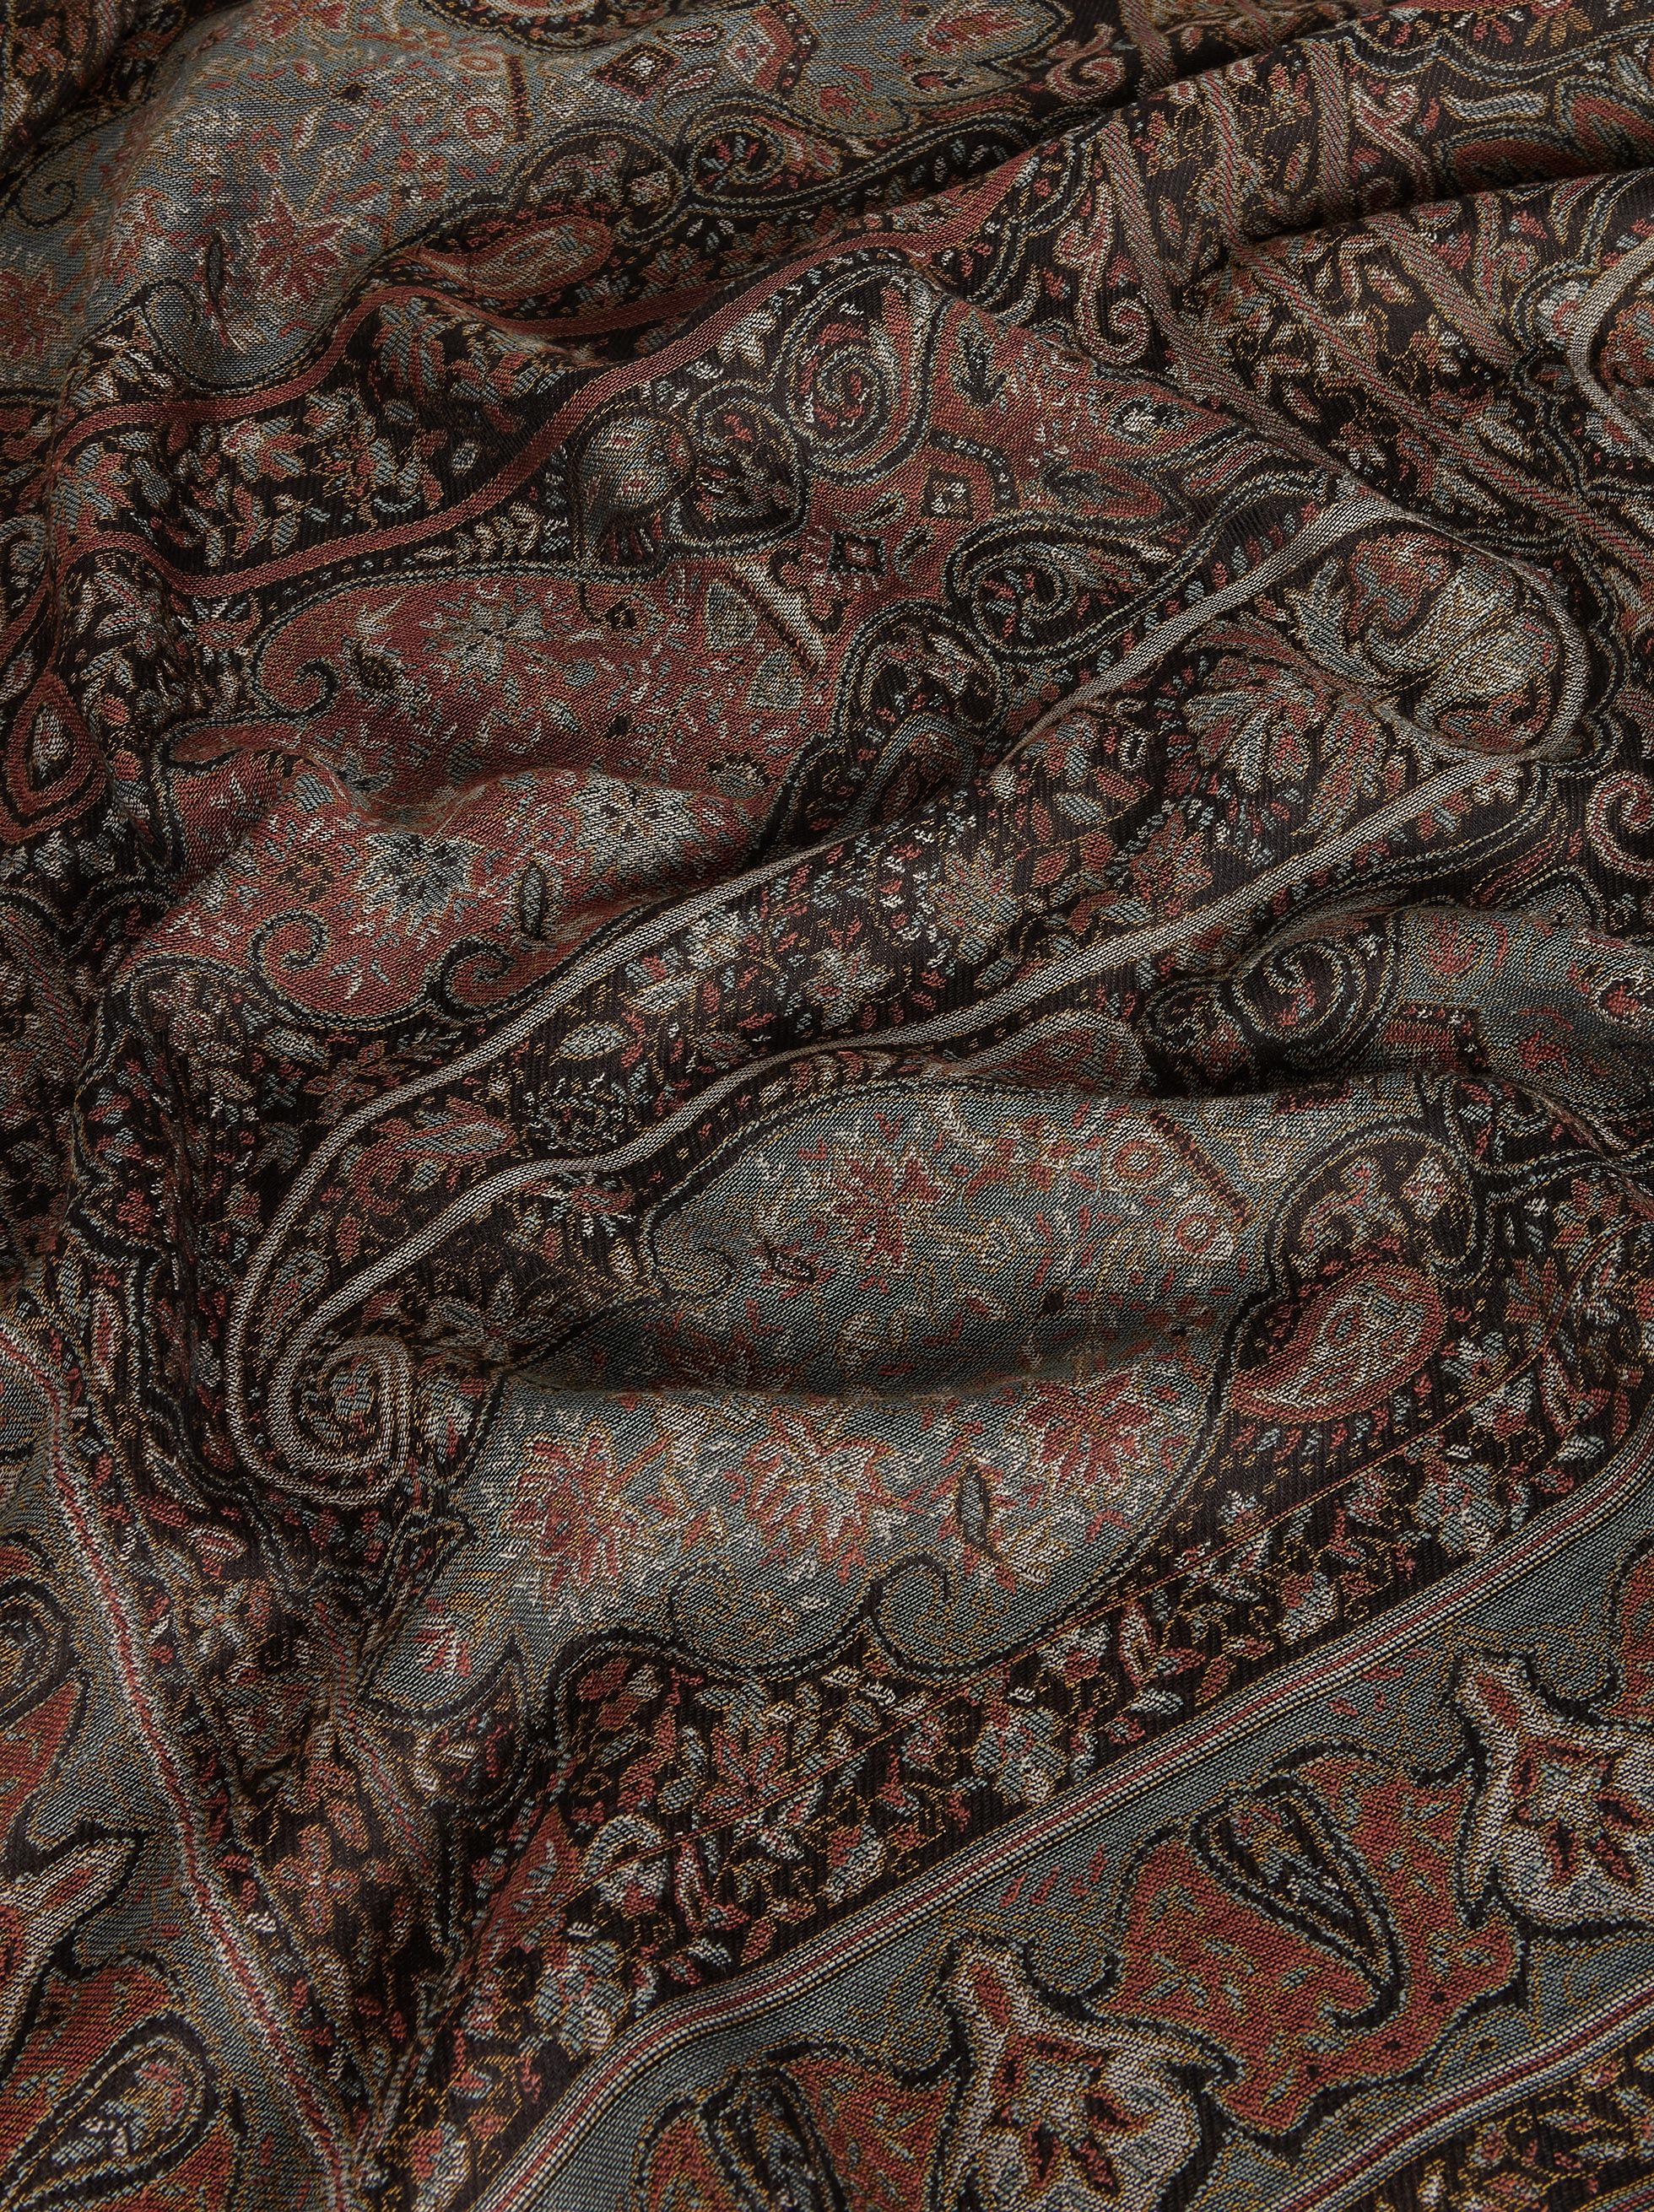 JACQUARD SHAWL WITH PAISLEY PATTERNS